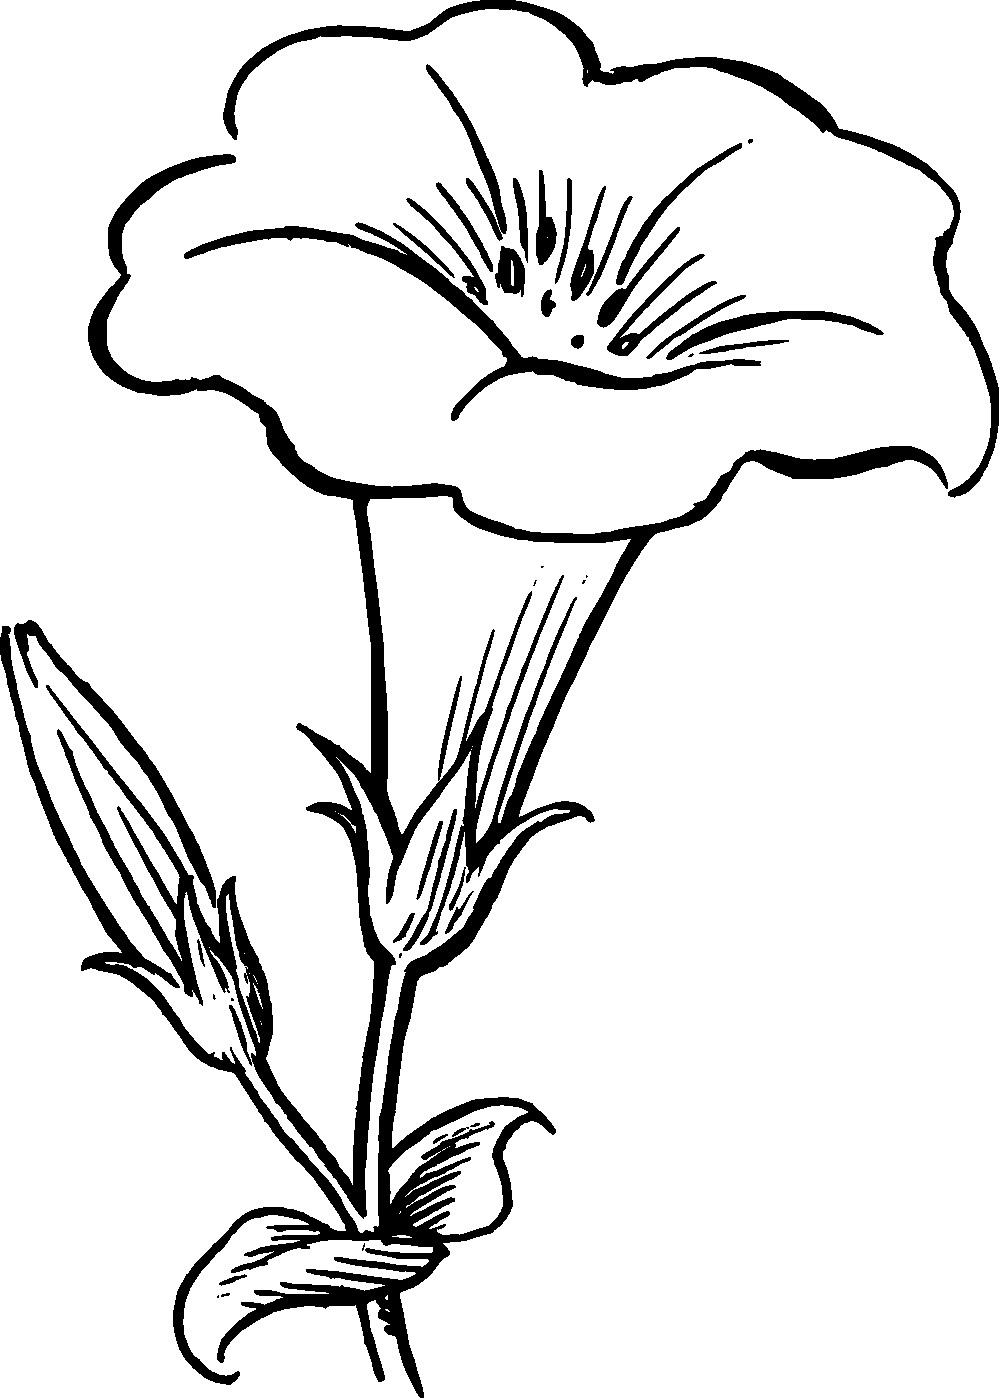 999x1398 Black And White Flower Border Clipart Line Art Flowers